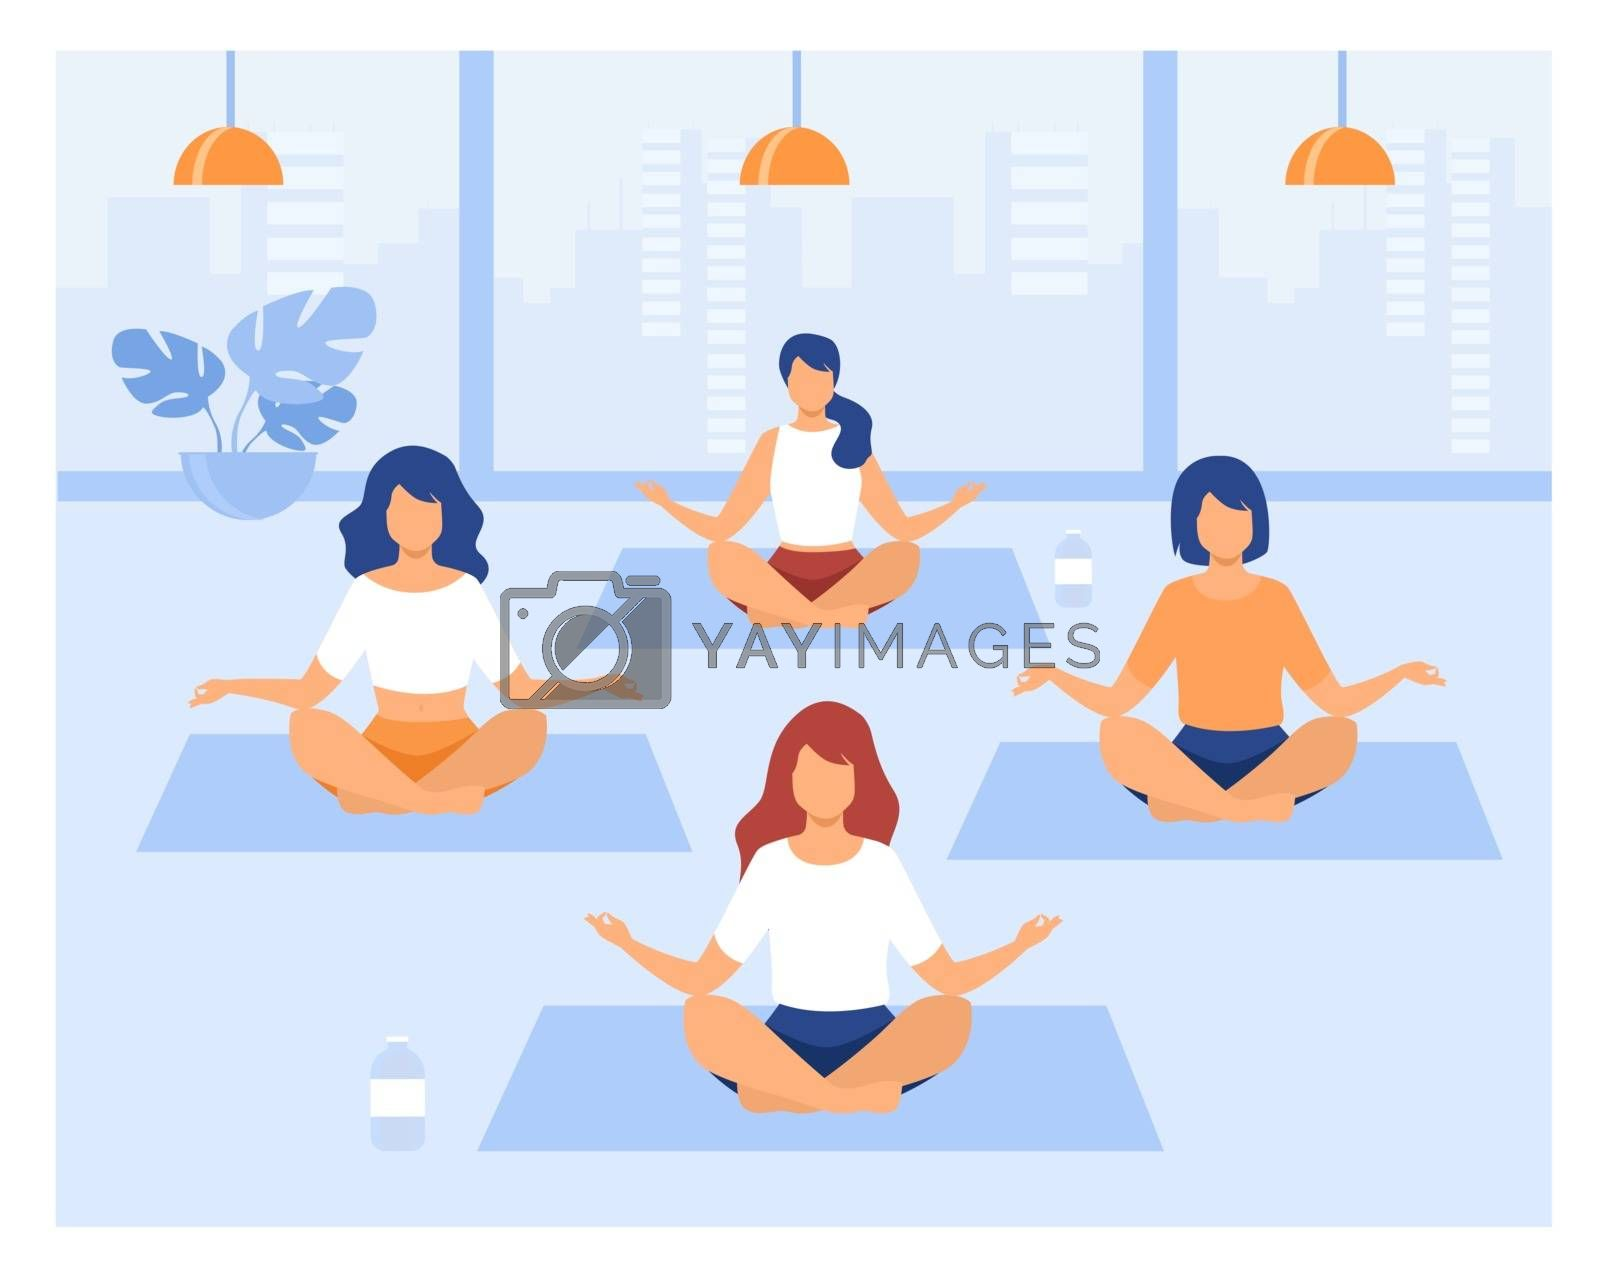 People practicing yoga. Women exercising at yoga class, sitting in lotus pose, meditating with teacher. Vector illustration can be used for physical activity, fitness, gym concept